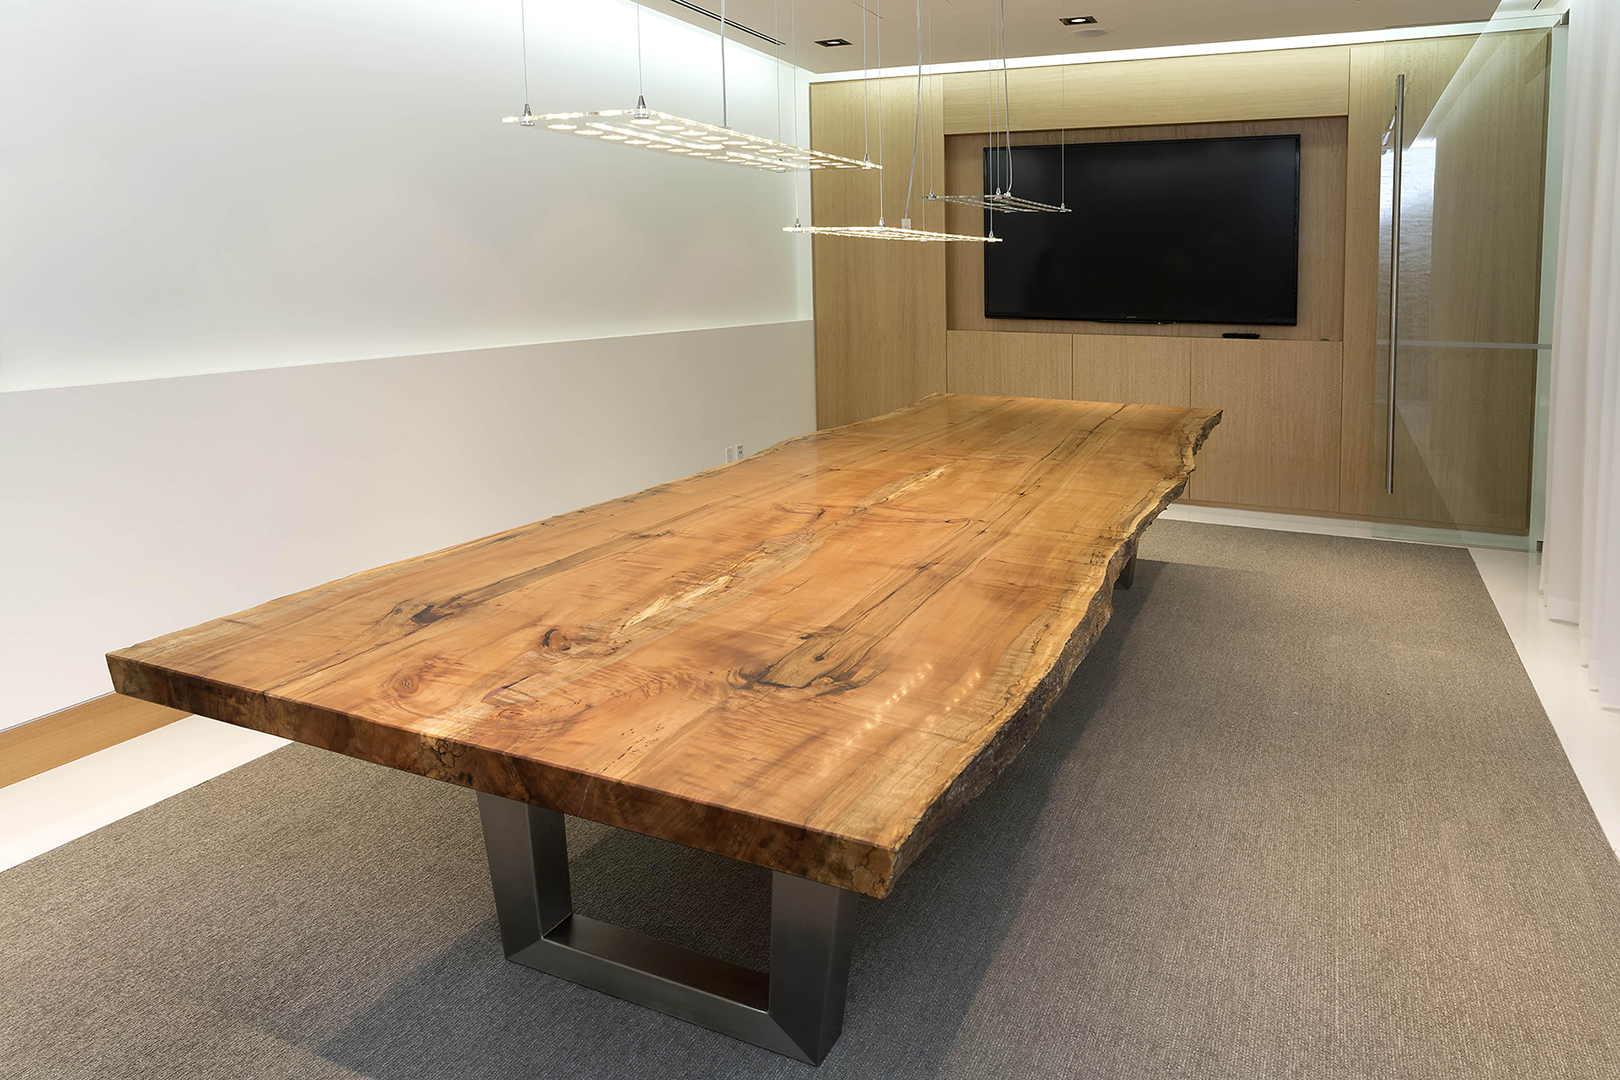 mapleart custom wood furniture vancouver bcaraucaria boardroom